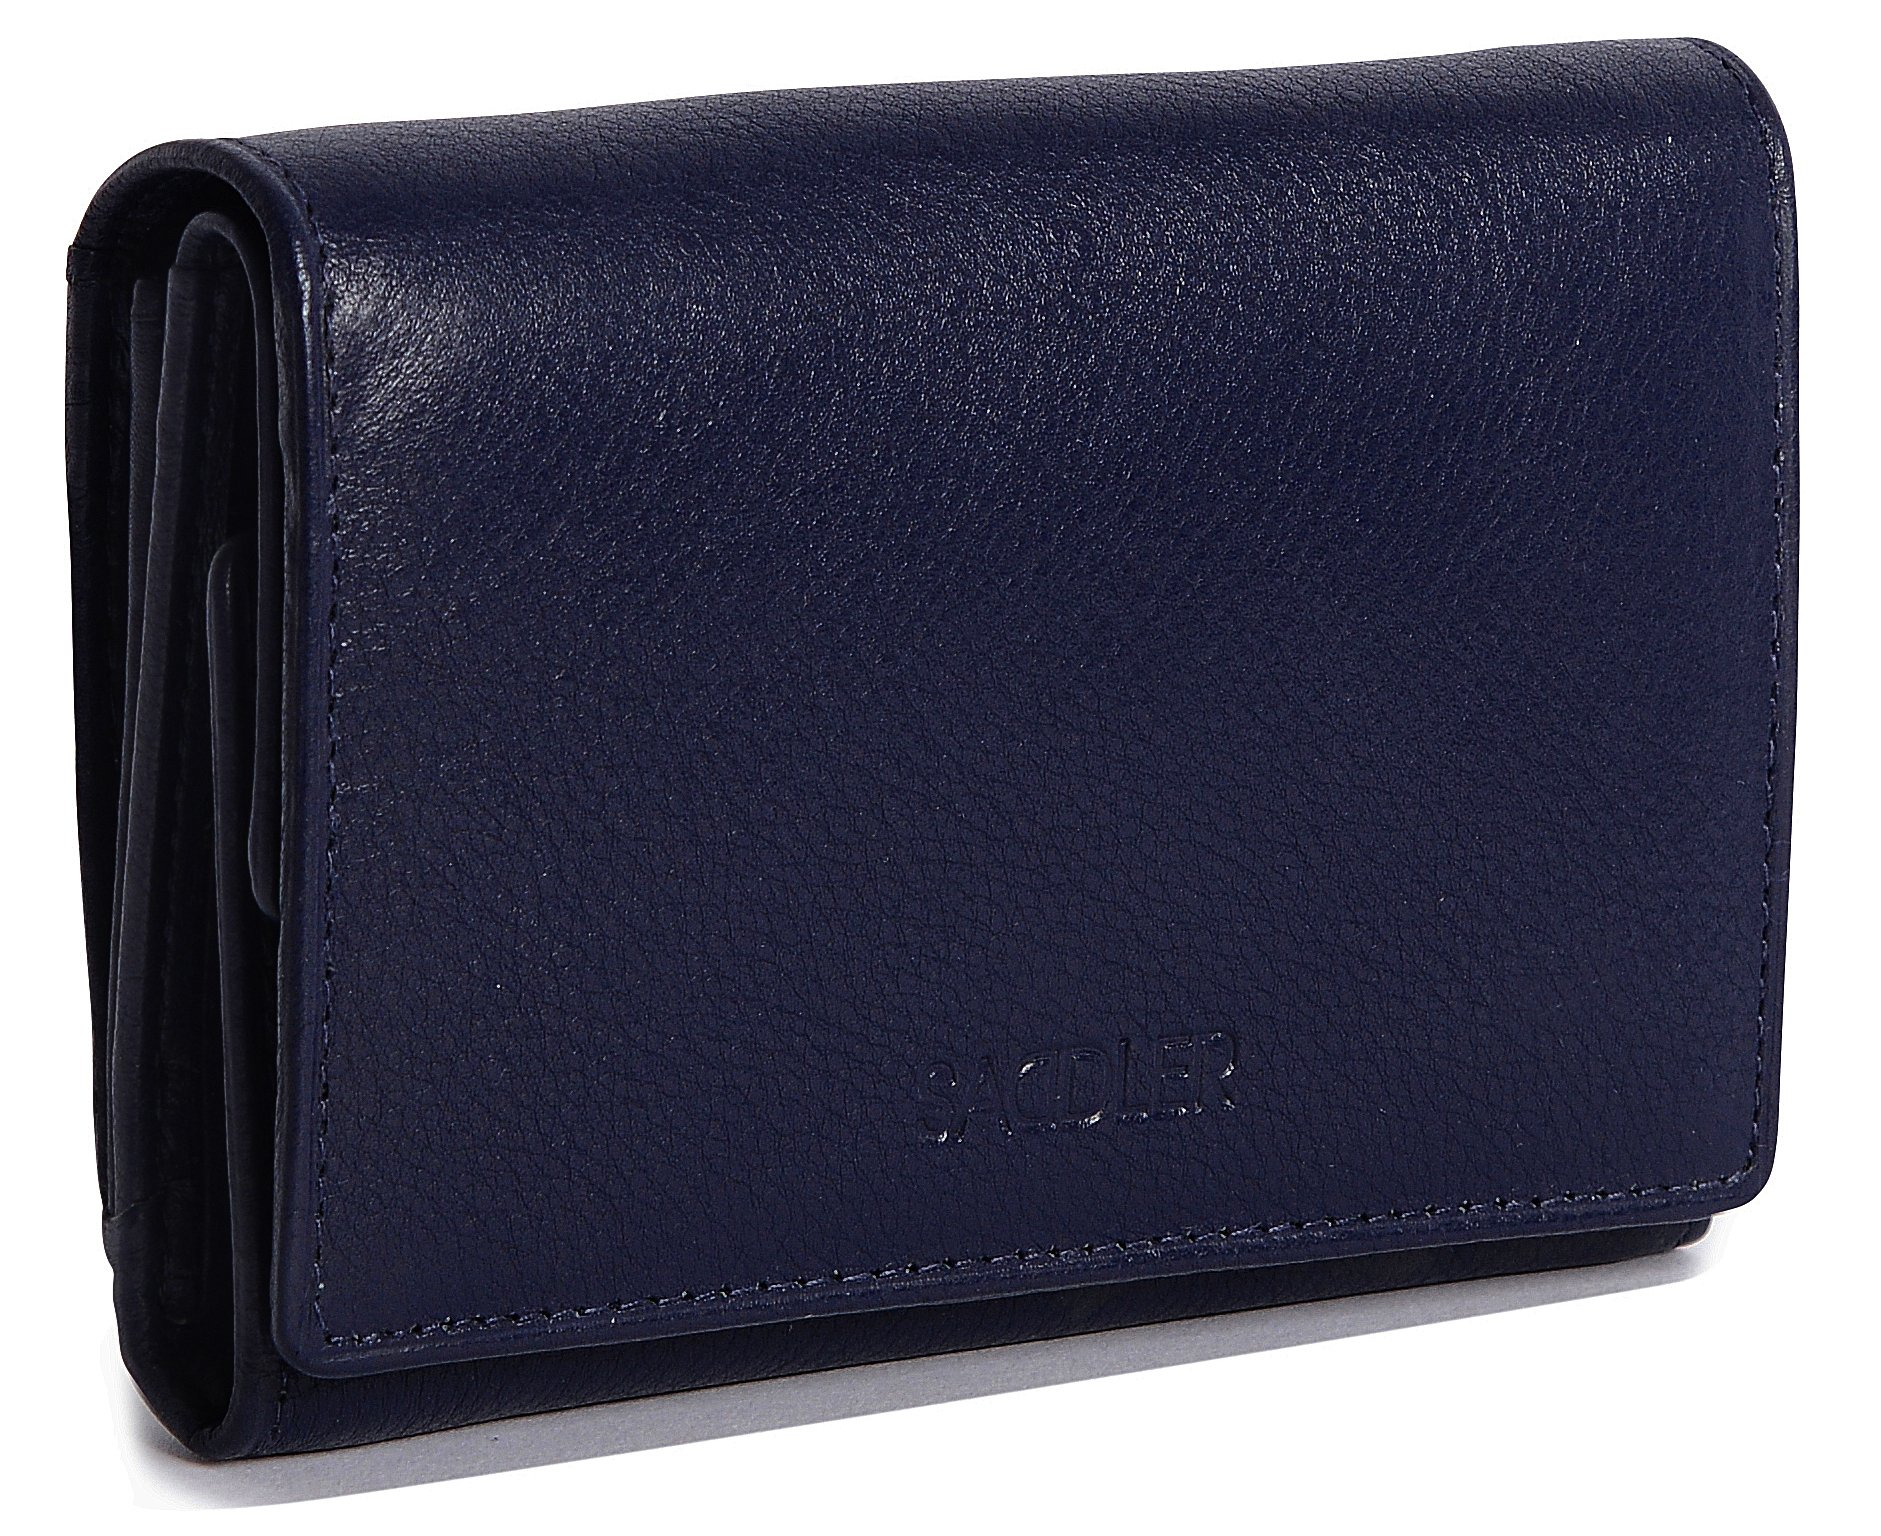 SADDLER Womens Leather Double Flap Coin Purse Trifold Wallet - Peacoat Blue